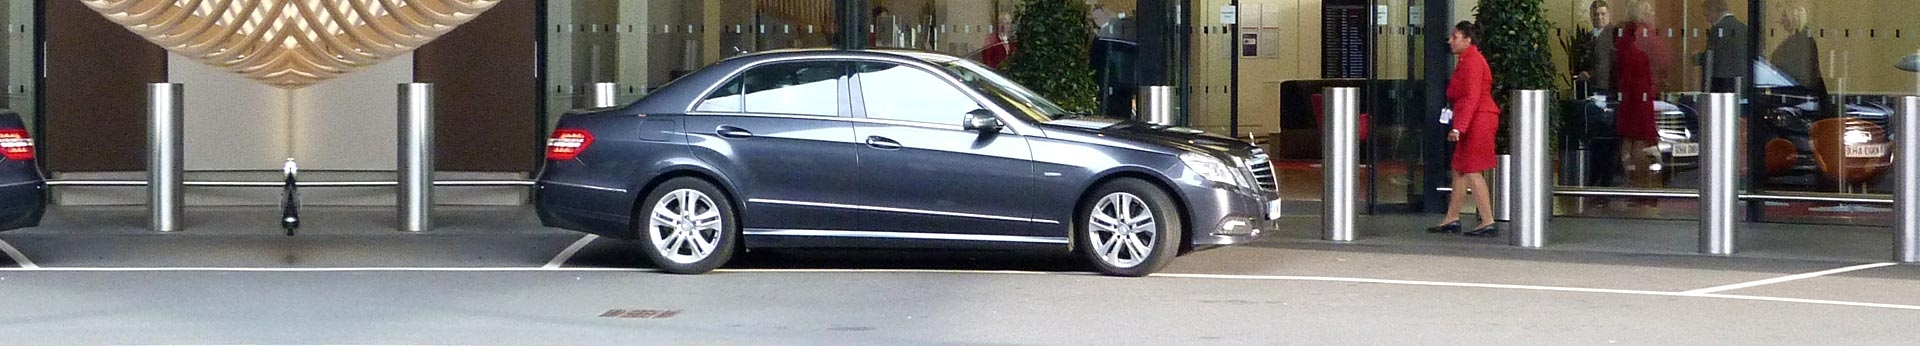 Silver Limo Chauffeurs (@silverlimo) Cover Image